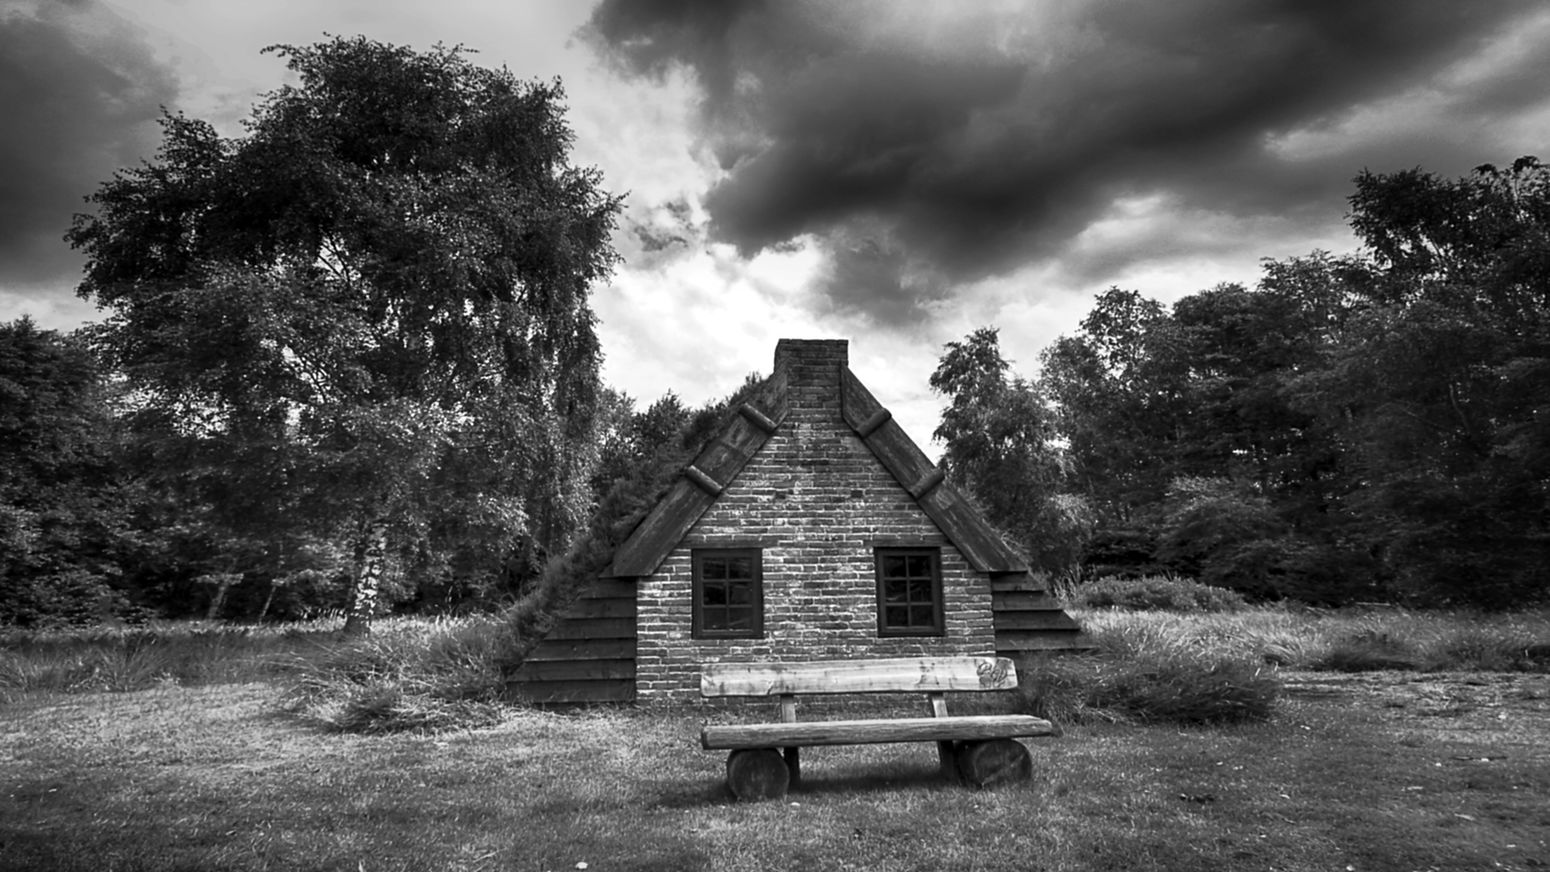 Sod House Turf Houses On The Way Travel Destinations The Ville Non-urban Scene Black & White Monochrome Bw_collection Blackandwhite Ostfriesland Tranquility